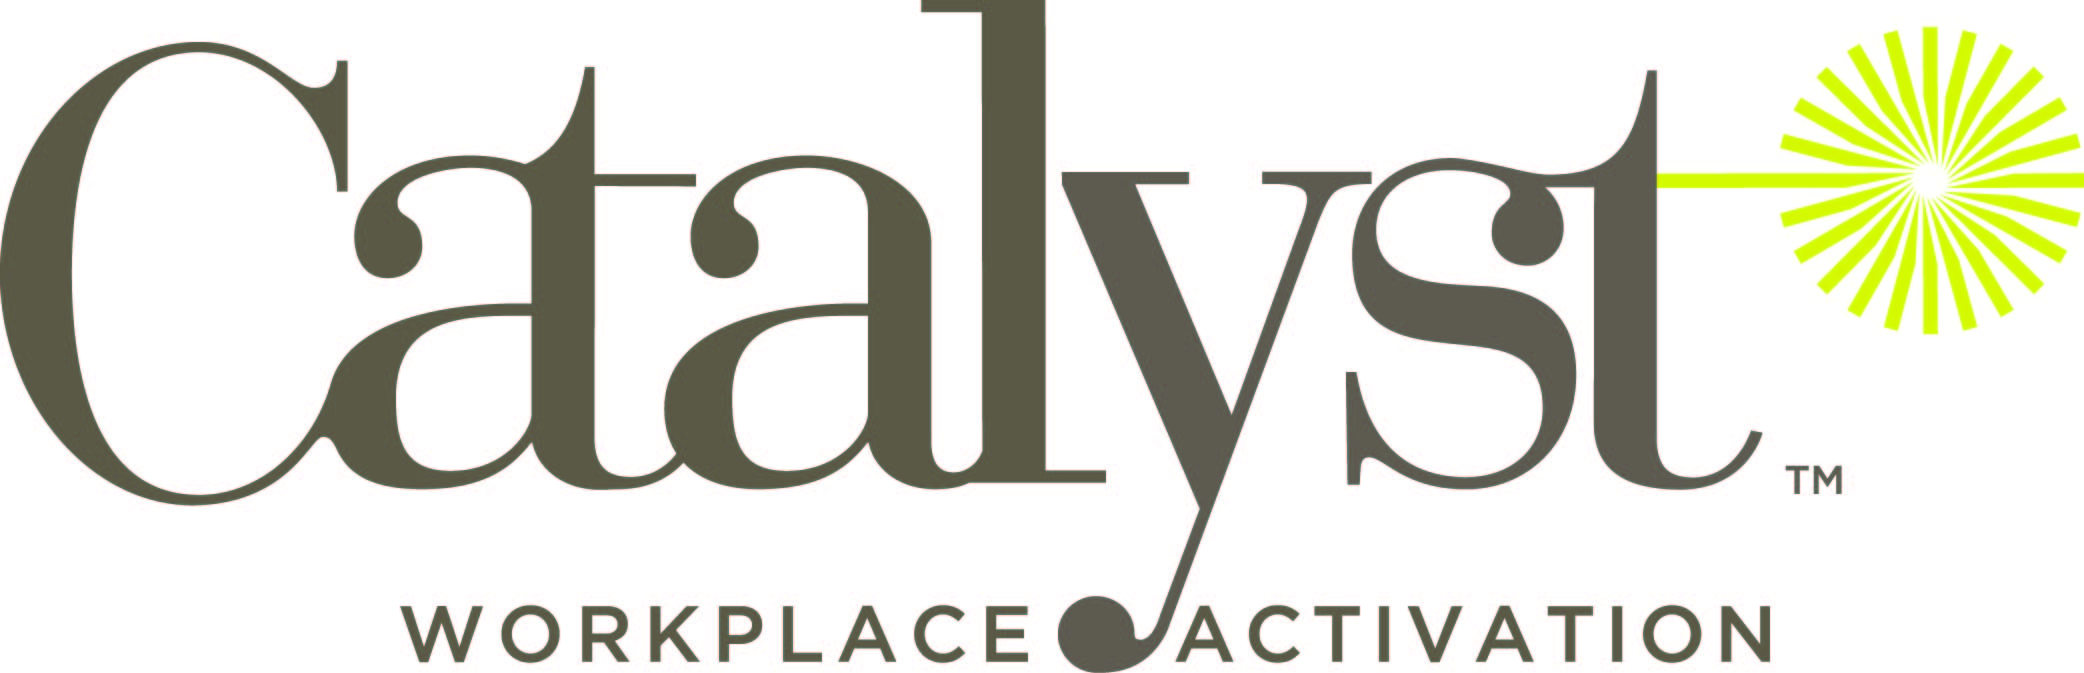 Catalyst Workplace Activation Logo